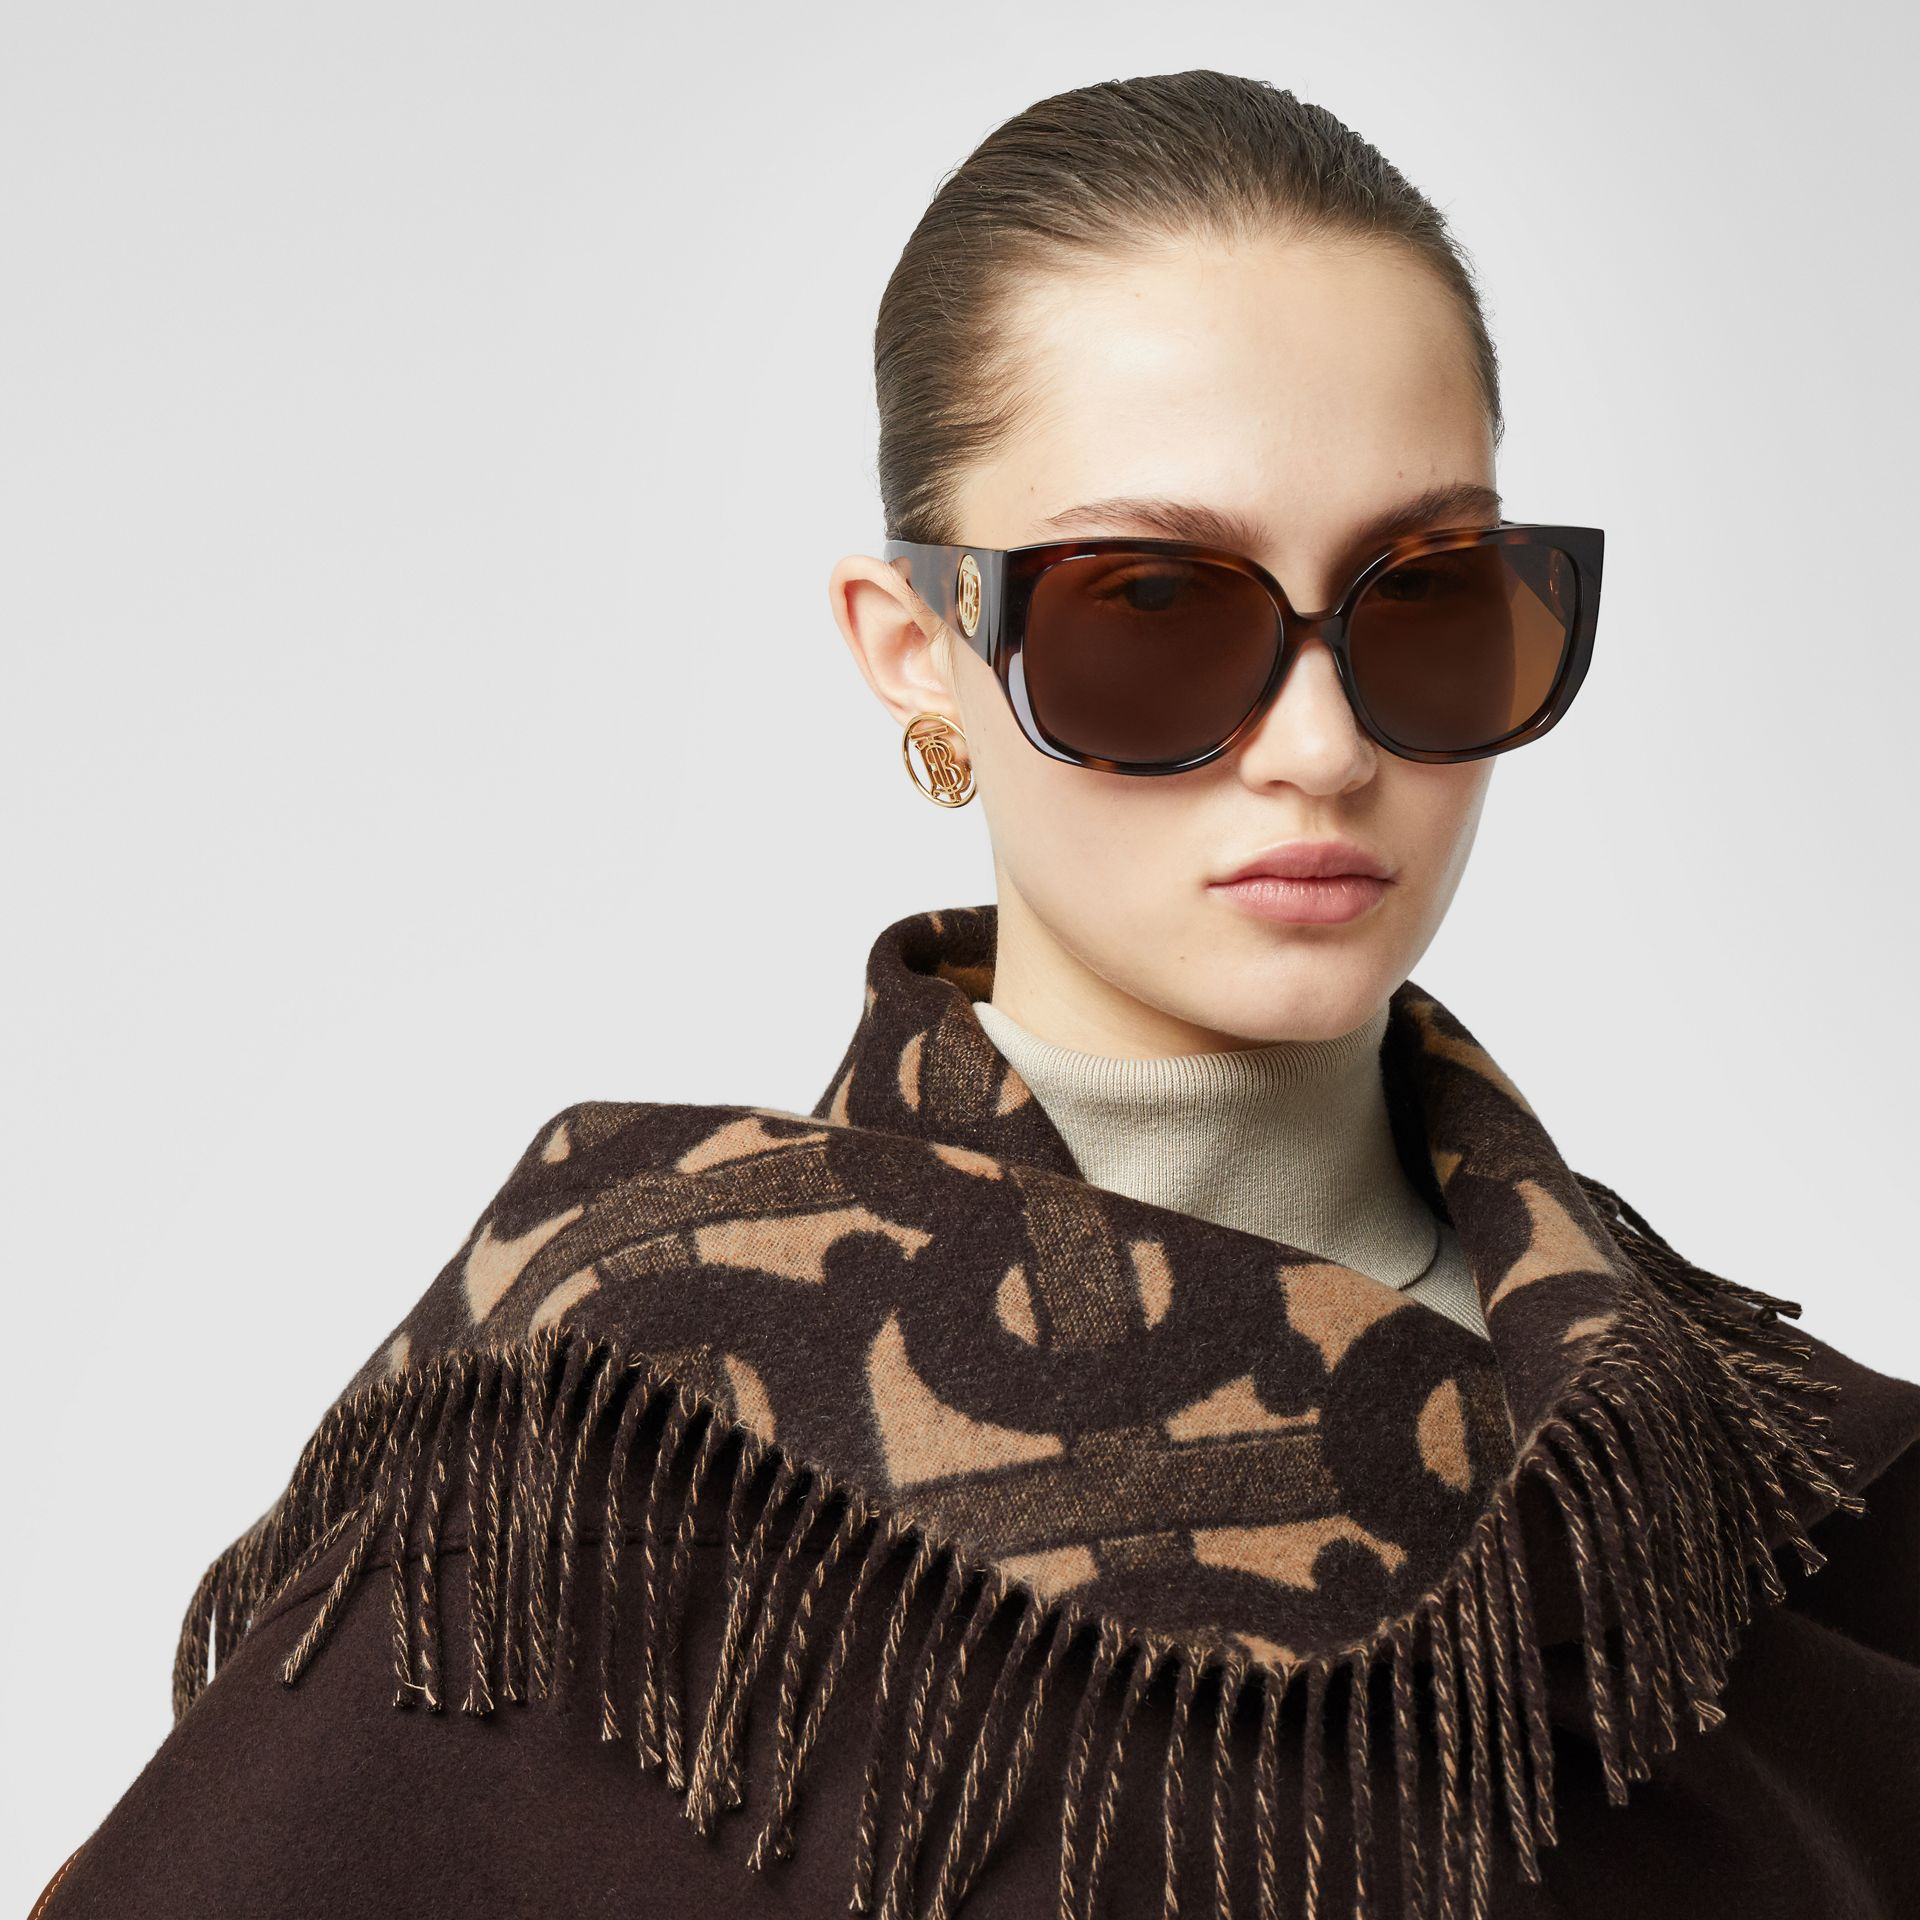 Monogram Merino Wool Cashmere Jacquard Cape in Deep Brown - Women | Burberry United Kingdom - gallery image 1